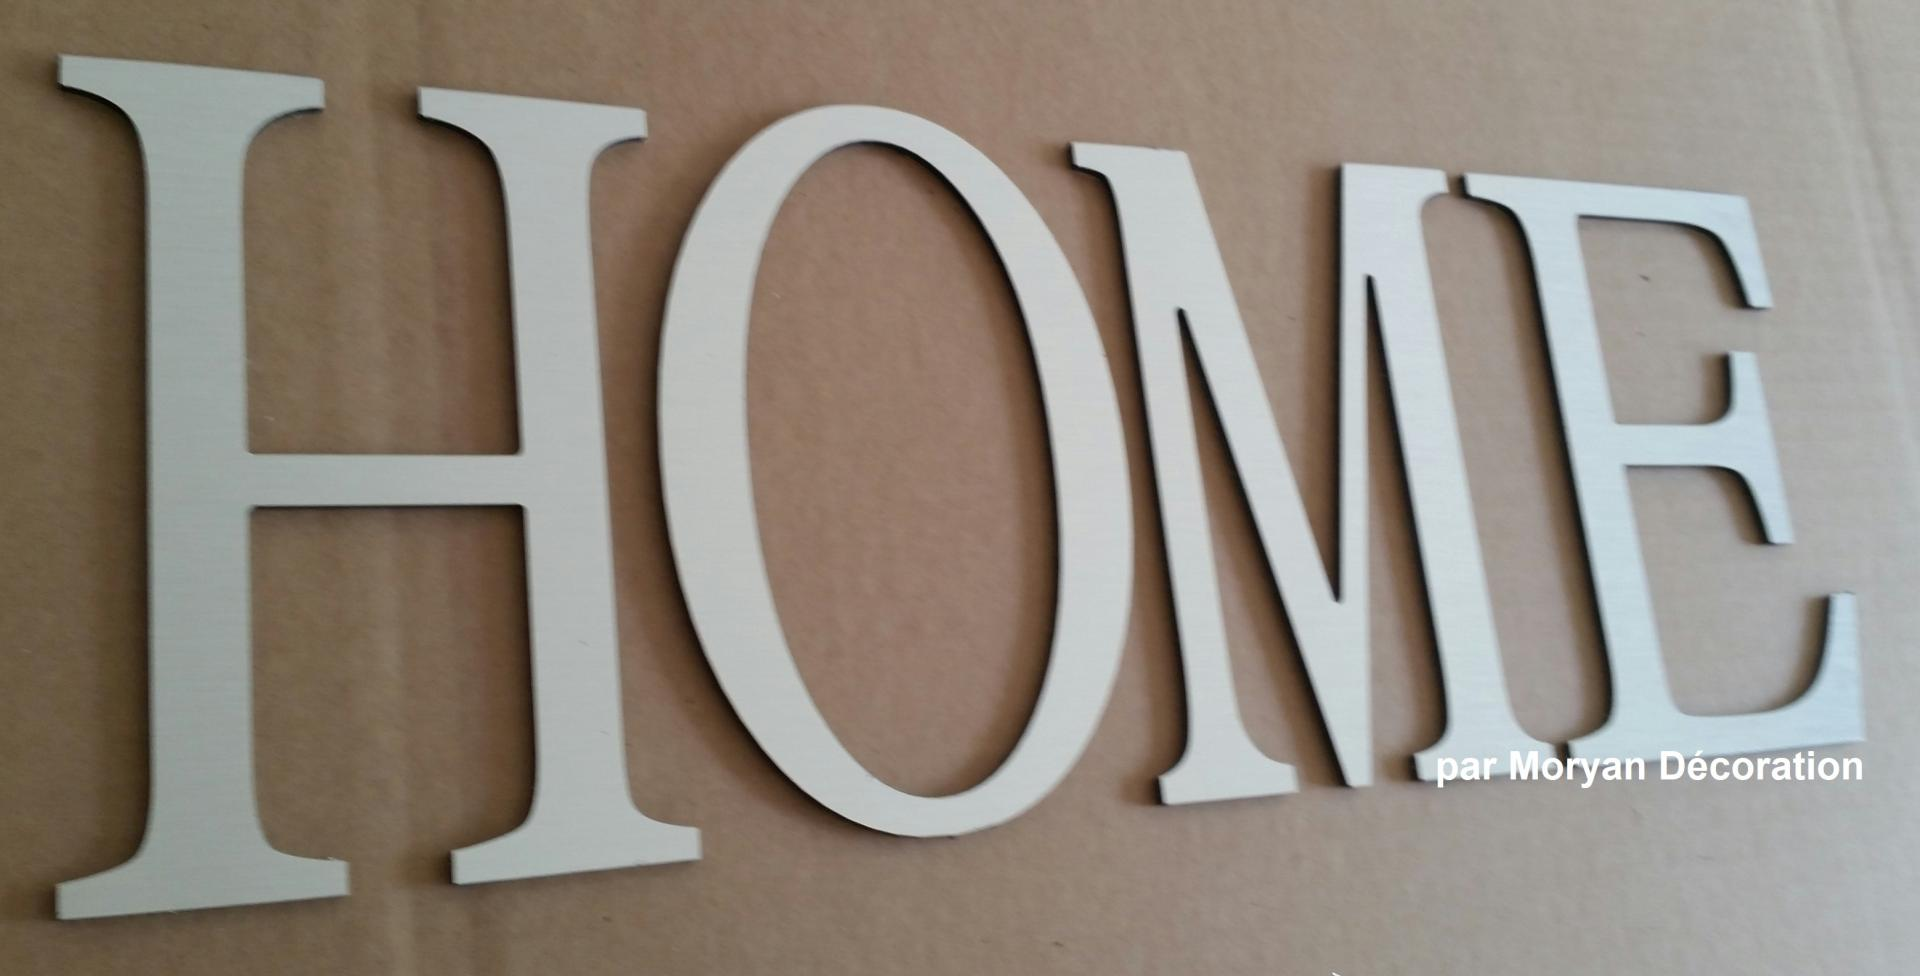 Lettre decorative HOME 1